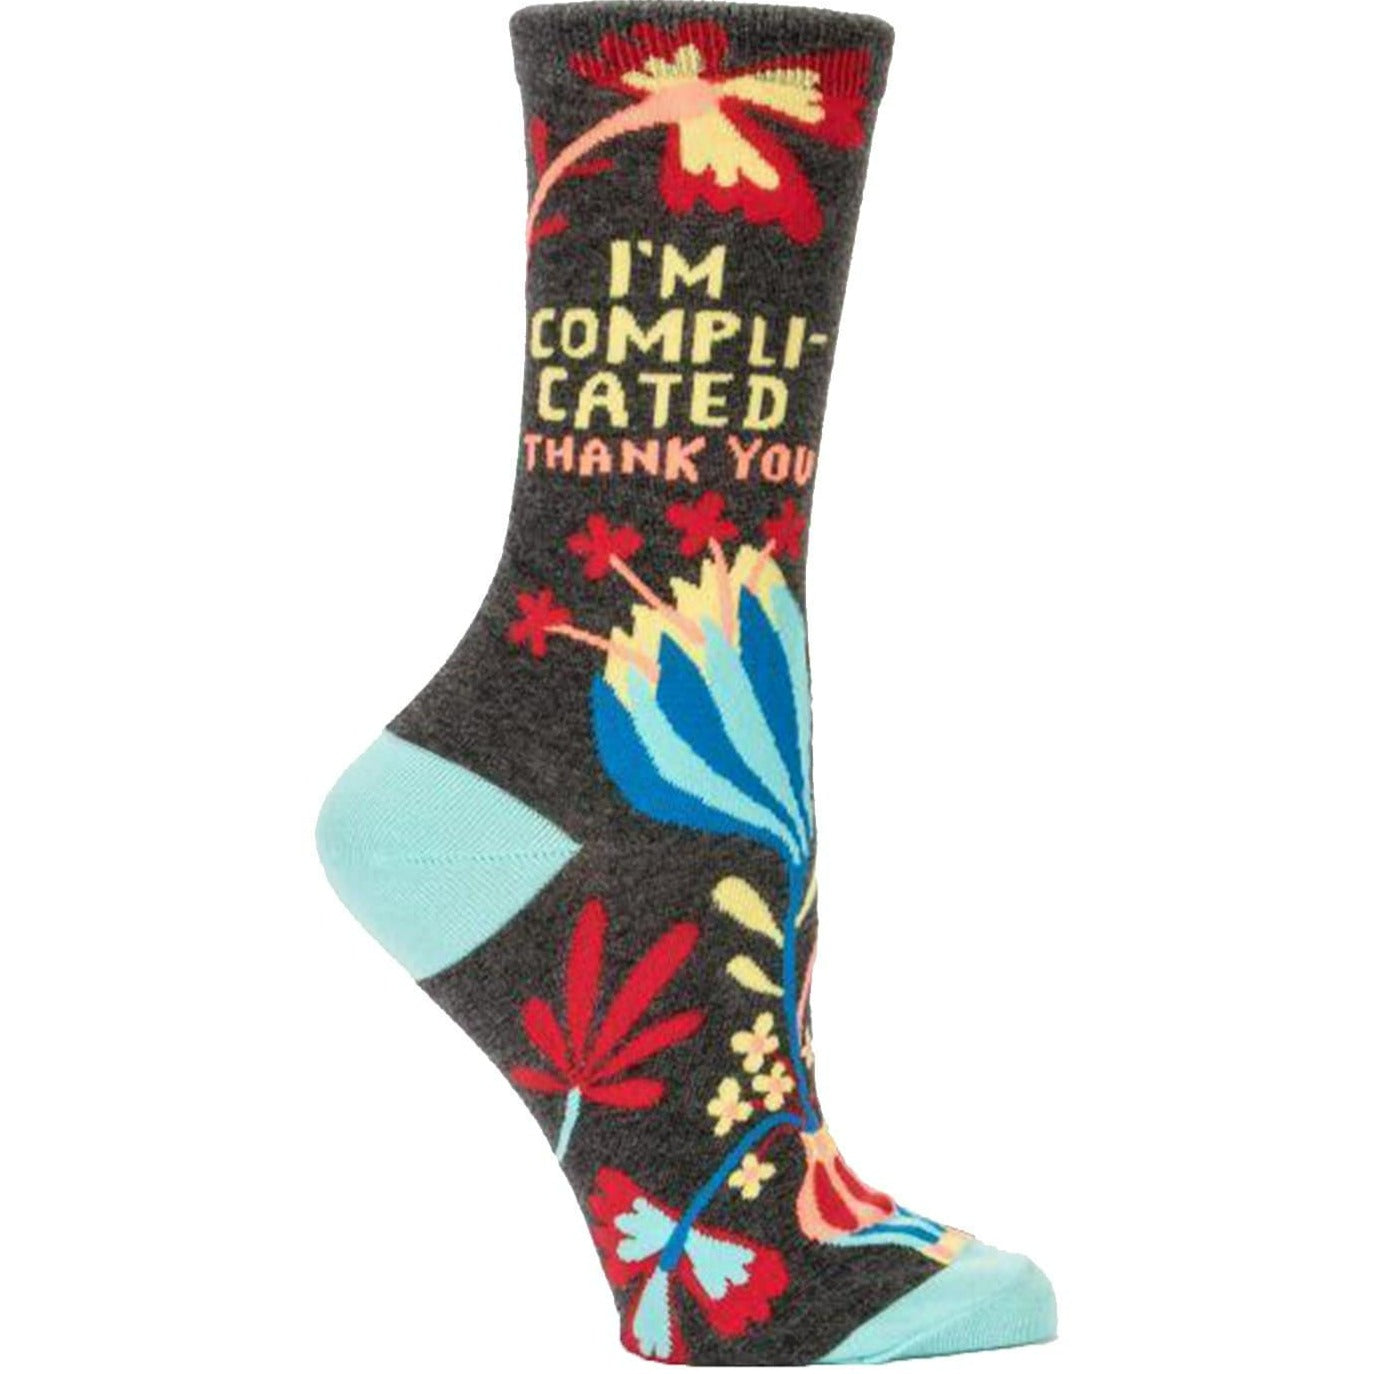 I'M COMPLICATED SOCKS - CREW SOCKS FOR WOMEN